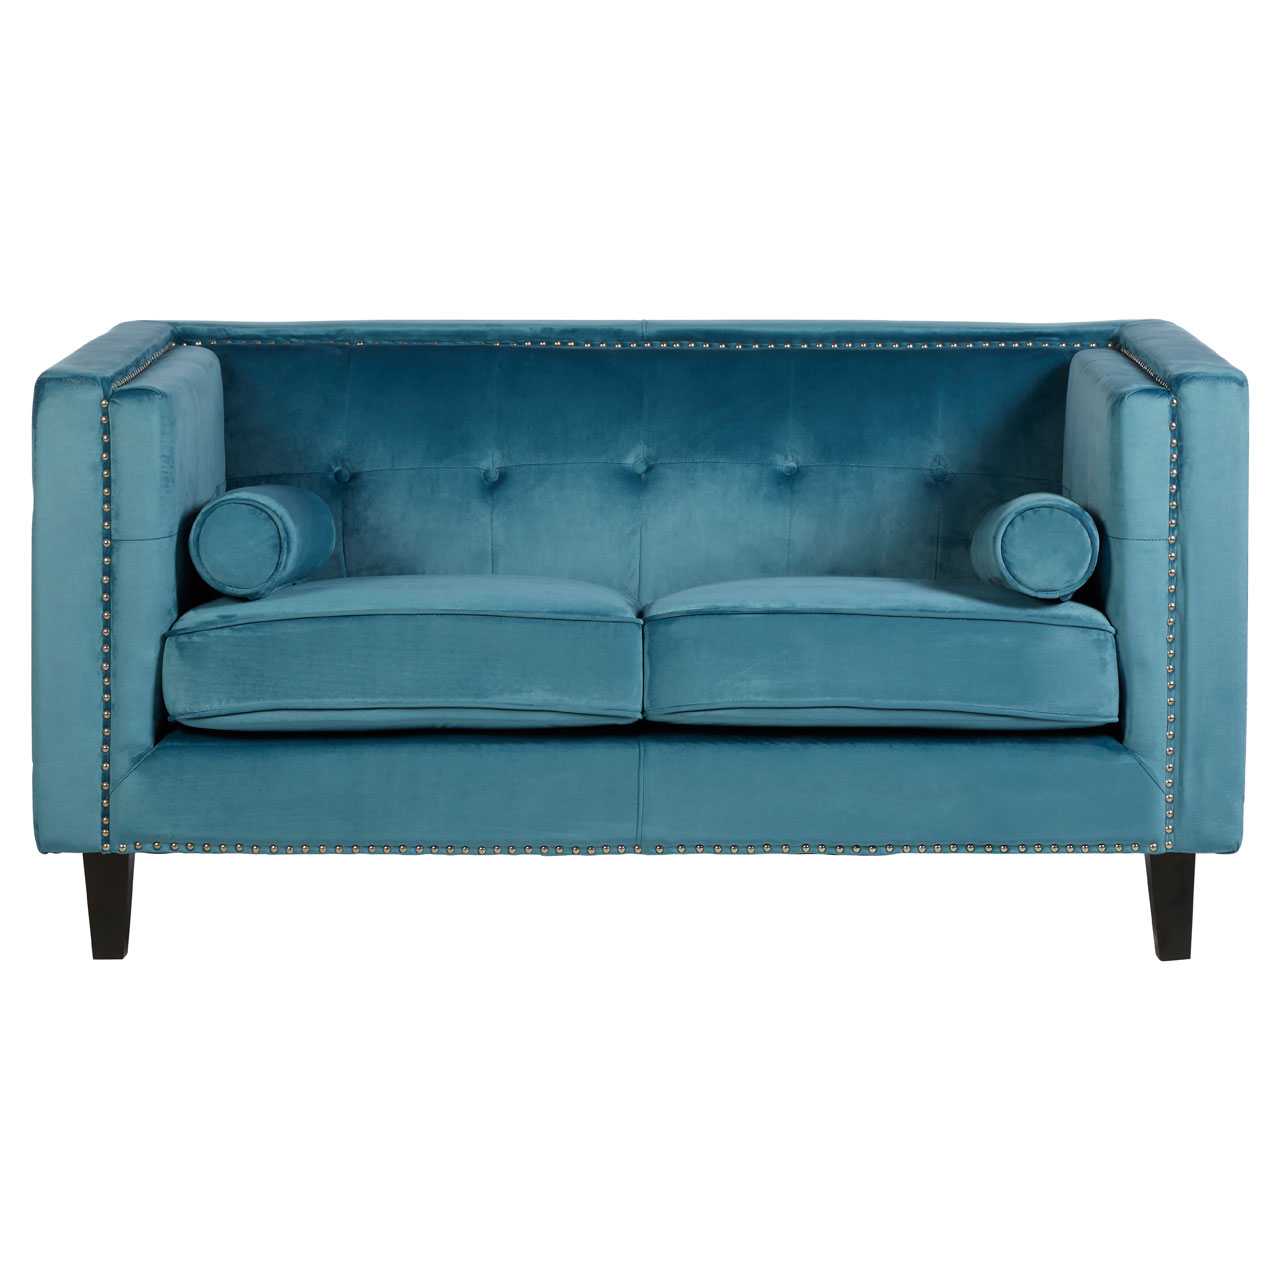 Magnificent Details About Felisa 2 Seat Sofa Blue Velvet Stud Detail Couch Home Furniture Alphanode Cool Chair Designs And Ideas Alphanodeonline